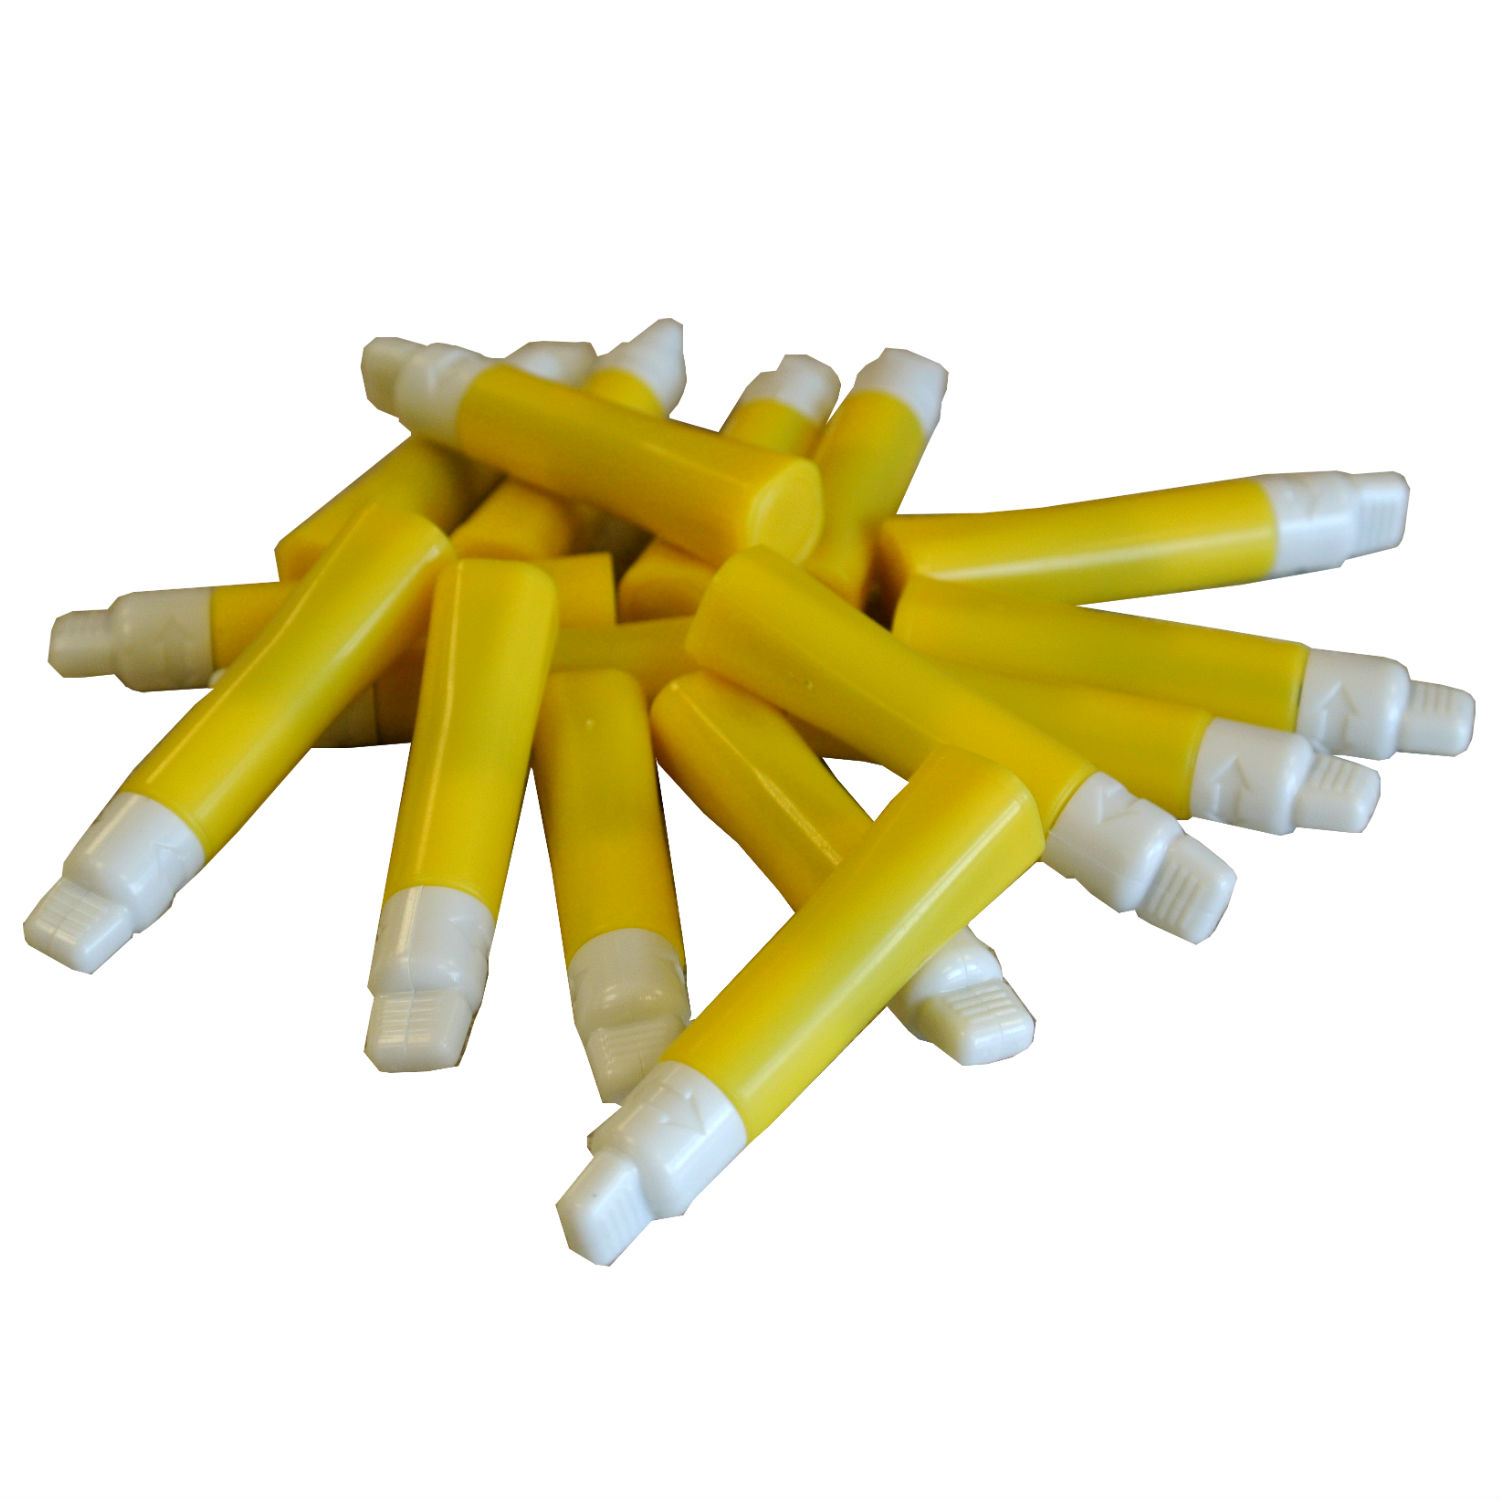 Single Use Safety Lancets